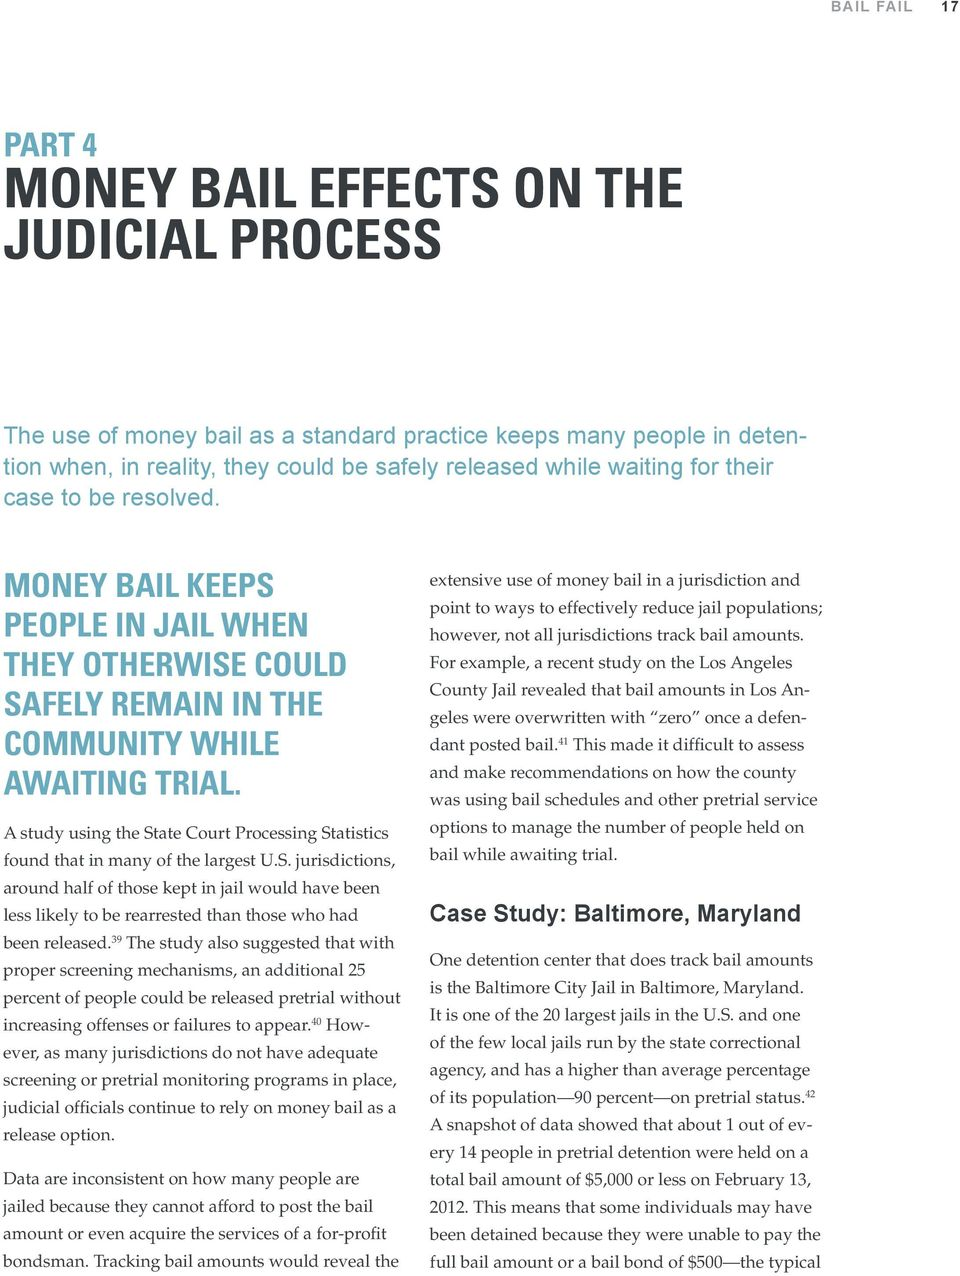 A study using the State Court Processing Statistics found that in many of the largest U.S. jurisdictions, around half of those kept in jail would have been less likely to be rearrested than those who had been released.